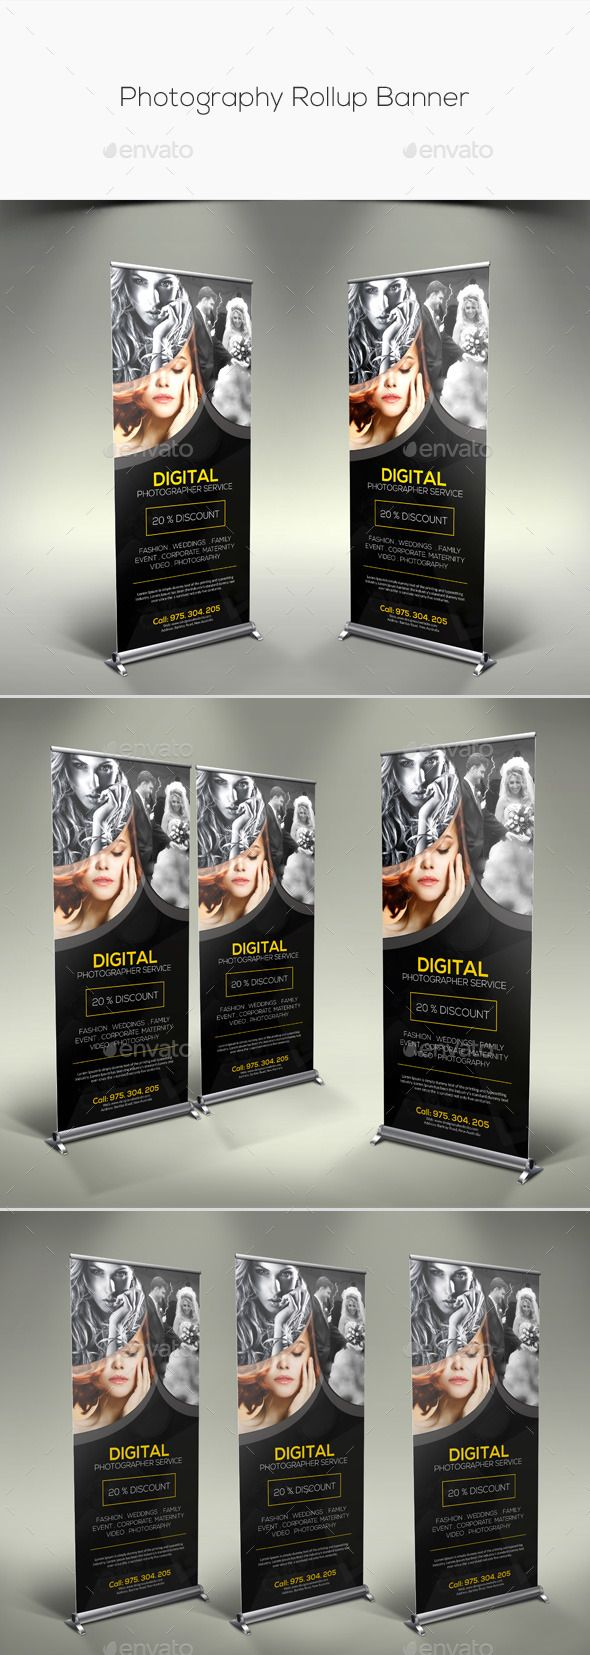 Photography Rollup Banner Template #design Download: http://graphicriver.net/item/photography-rollup-banner/11279958?ref=ksioks